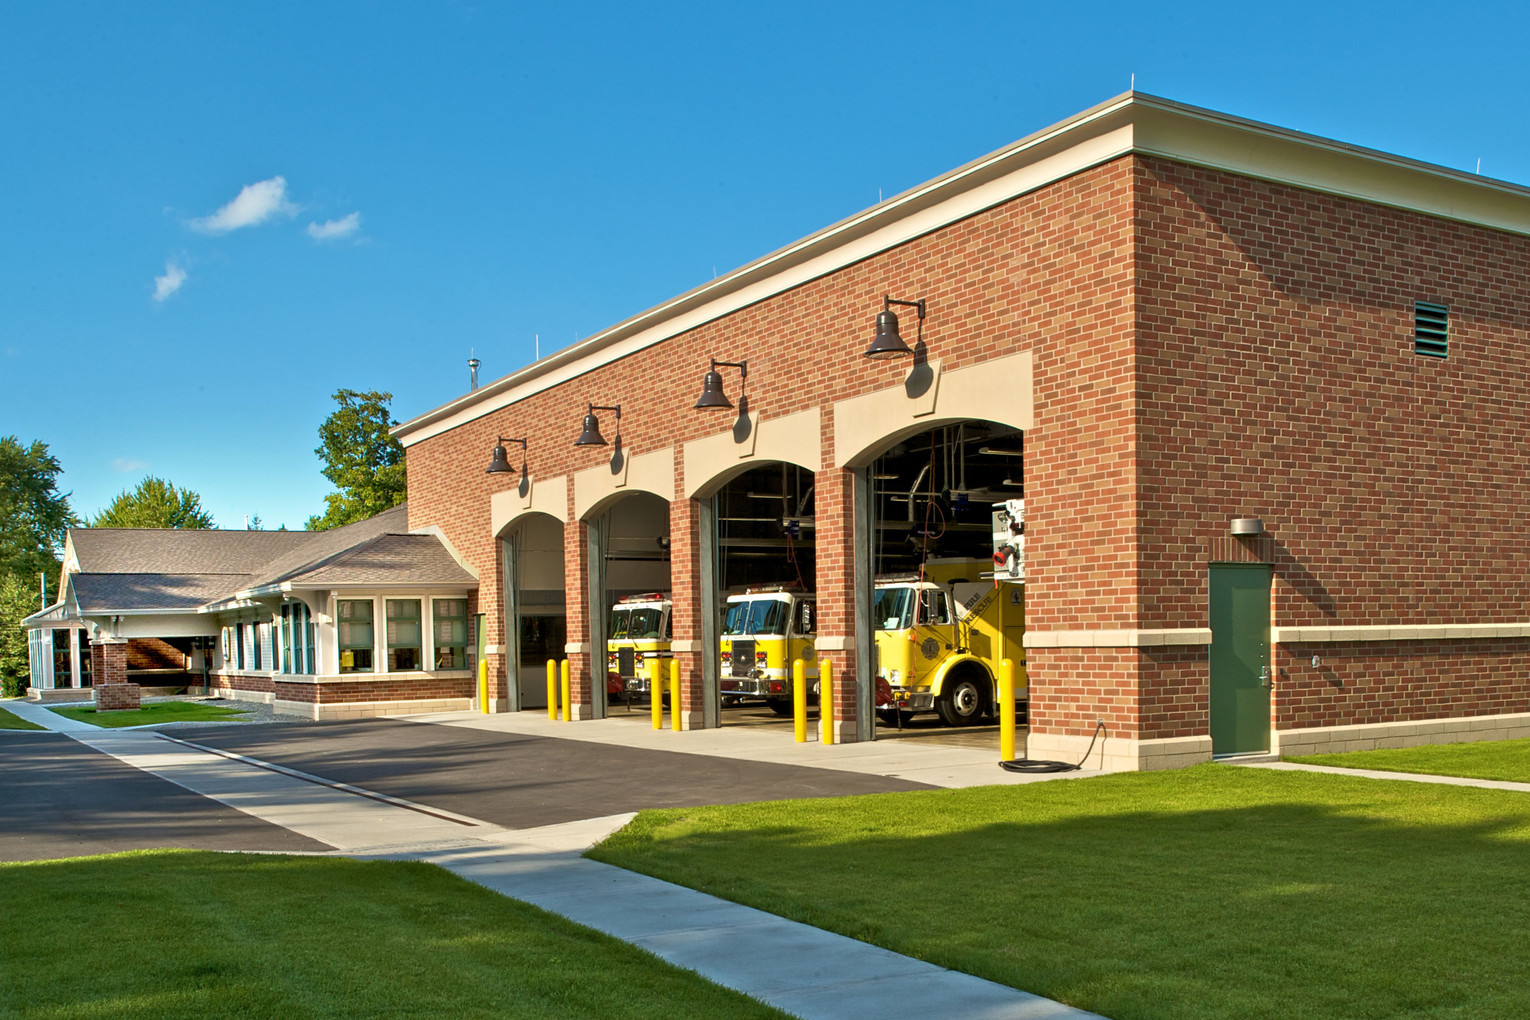 Skaneateles Fire Station - Exterior - Garage Doors Open